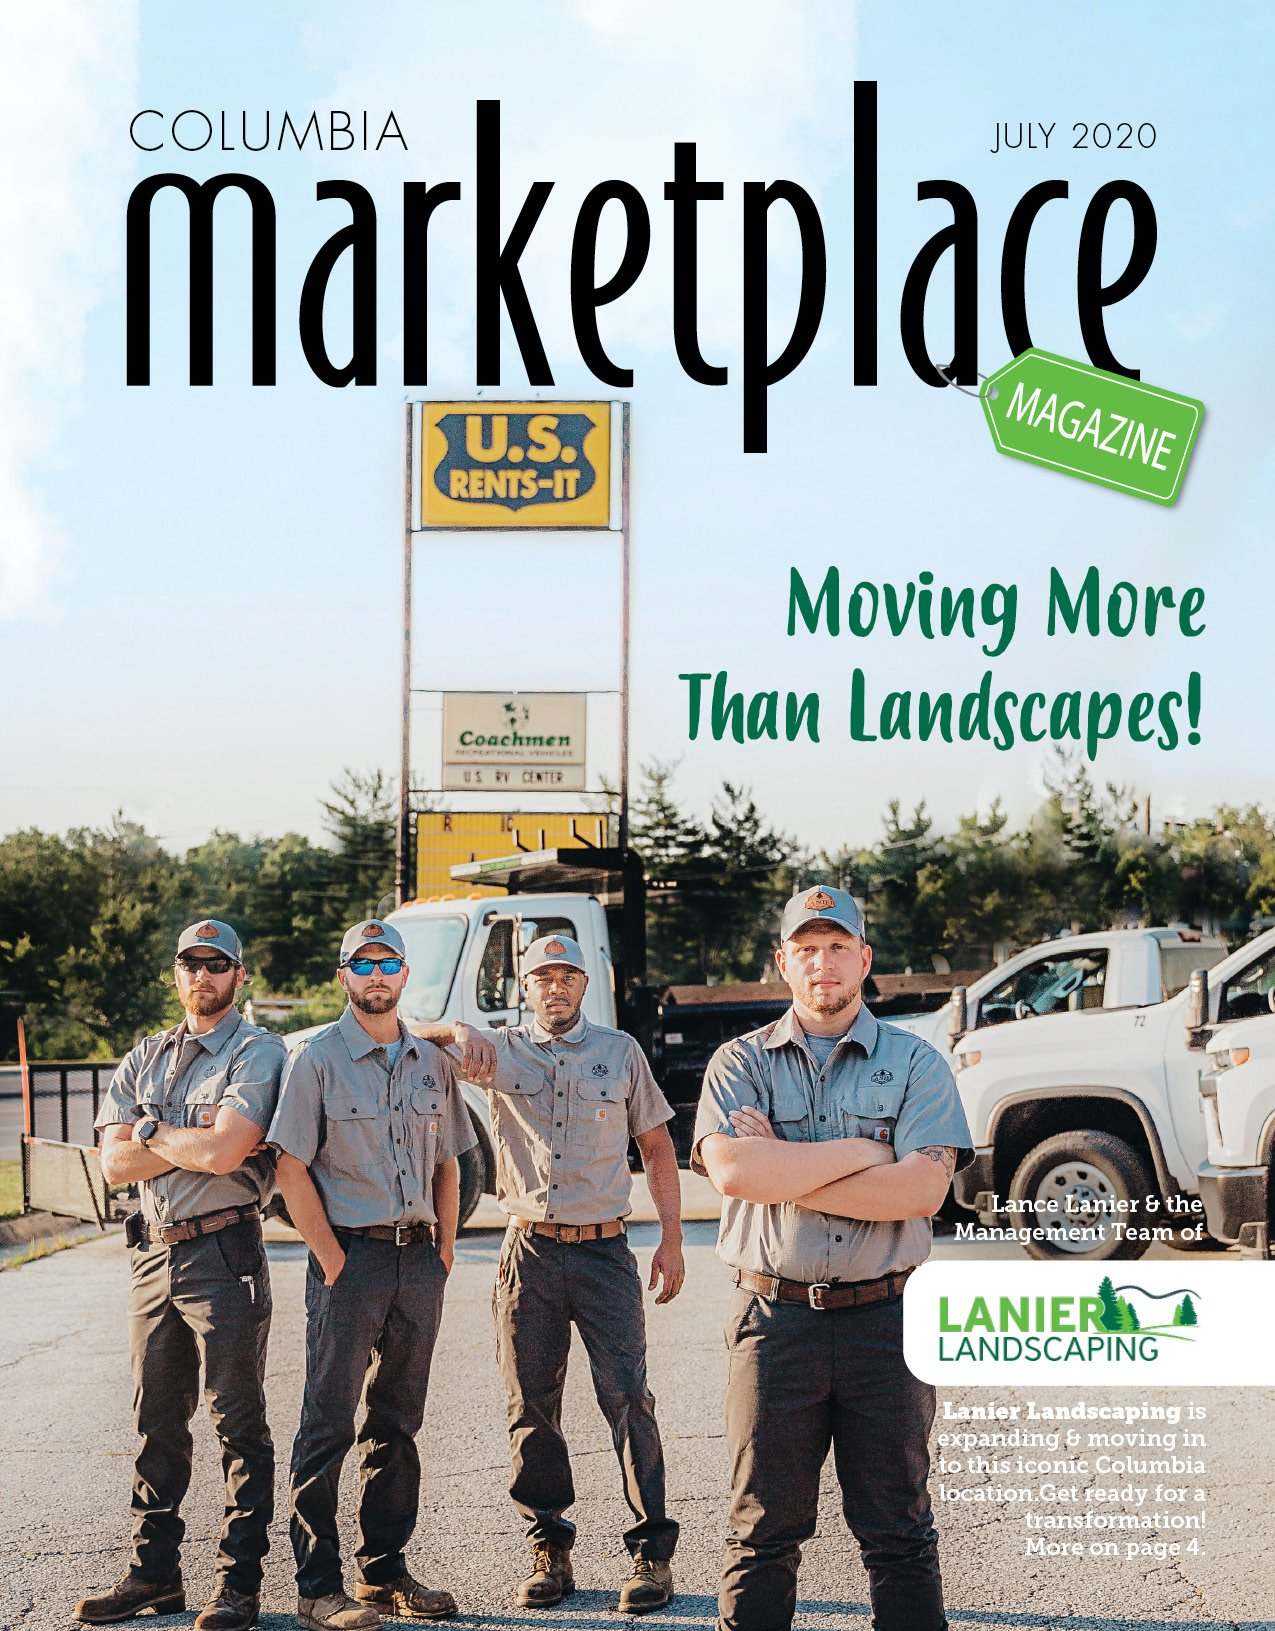 Marketplace Magazine by Modern Media Concepts July 2020 Edition Featuring Lanier Landscaping Designer in Columbia Missouri 1